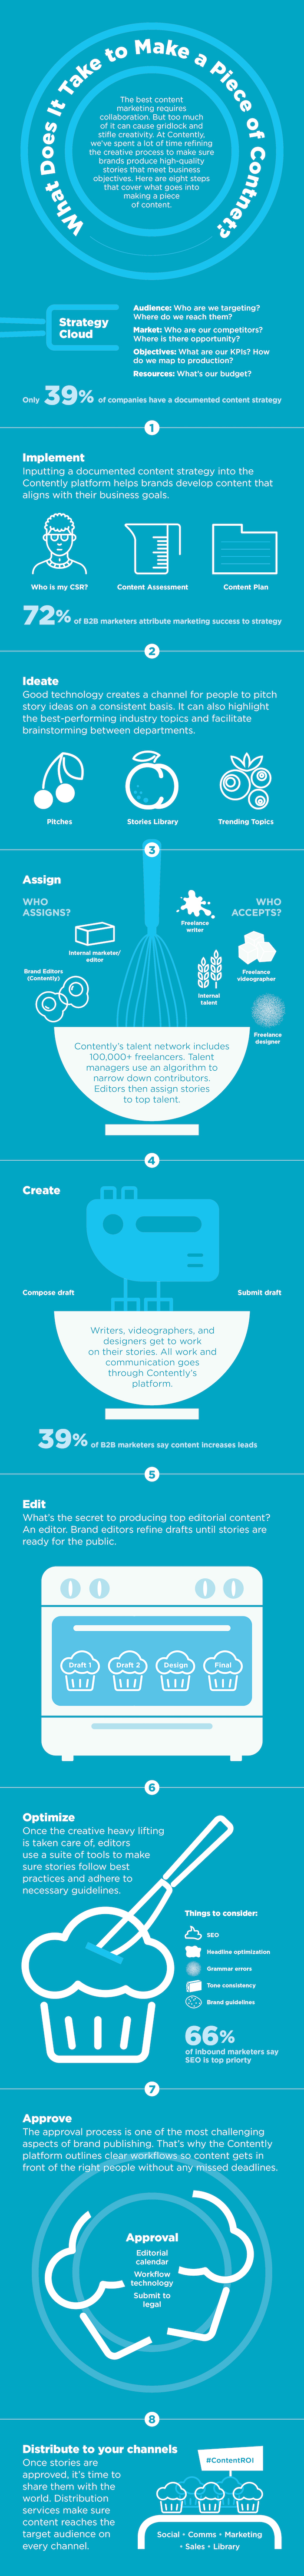 Creating Content that Works: An 8-Step Process - Infographic